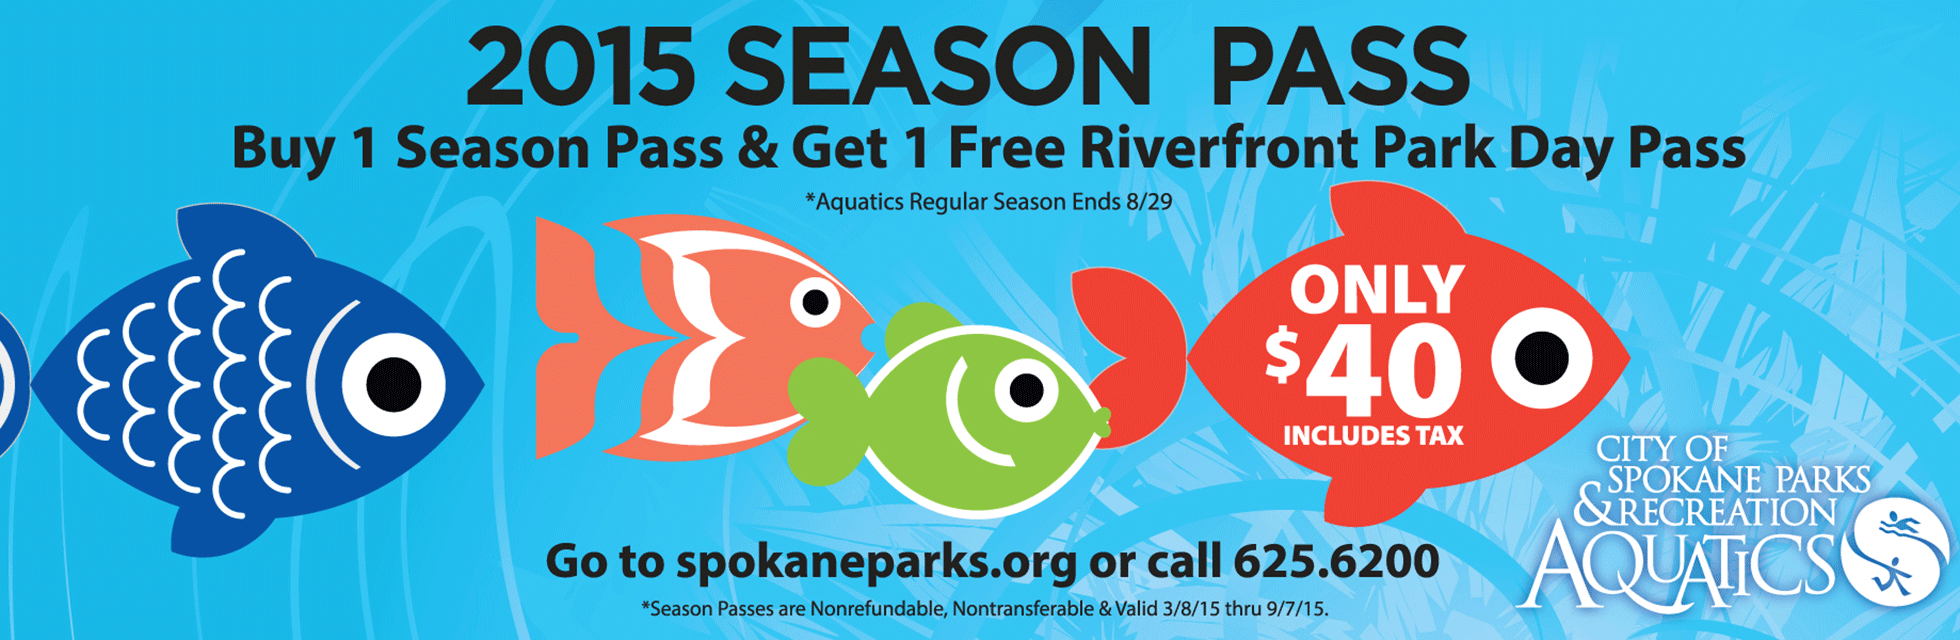 Aquatics Season pass and RFP Day pass deal